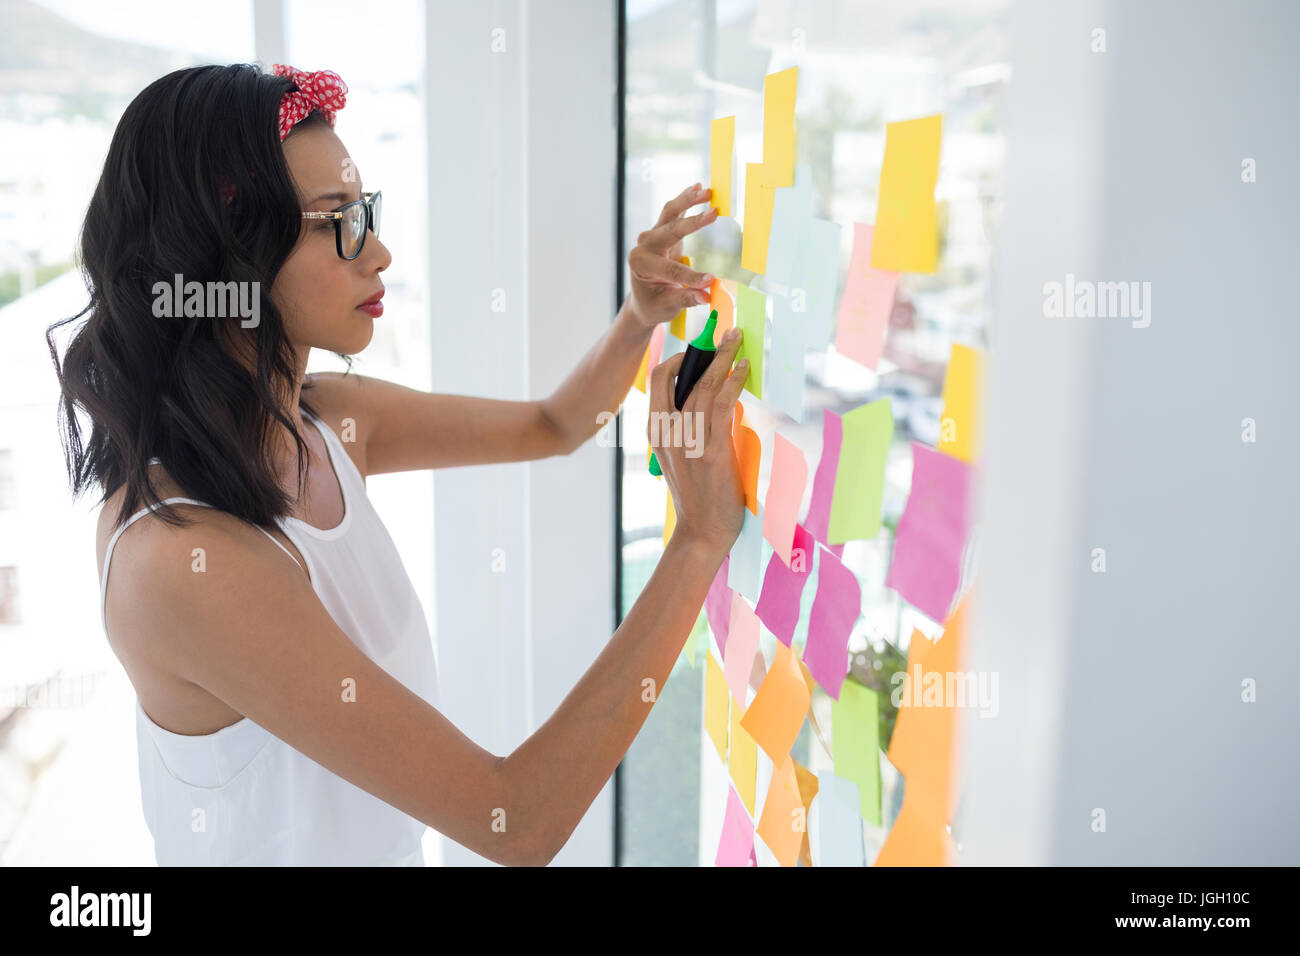 Female executive writing on sticky notes in office - Stock Image